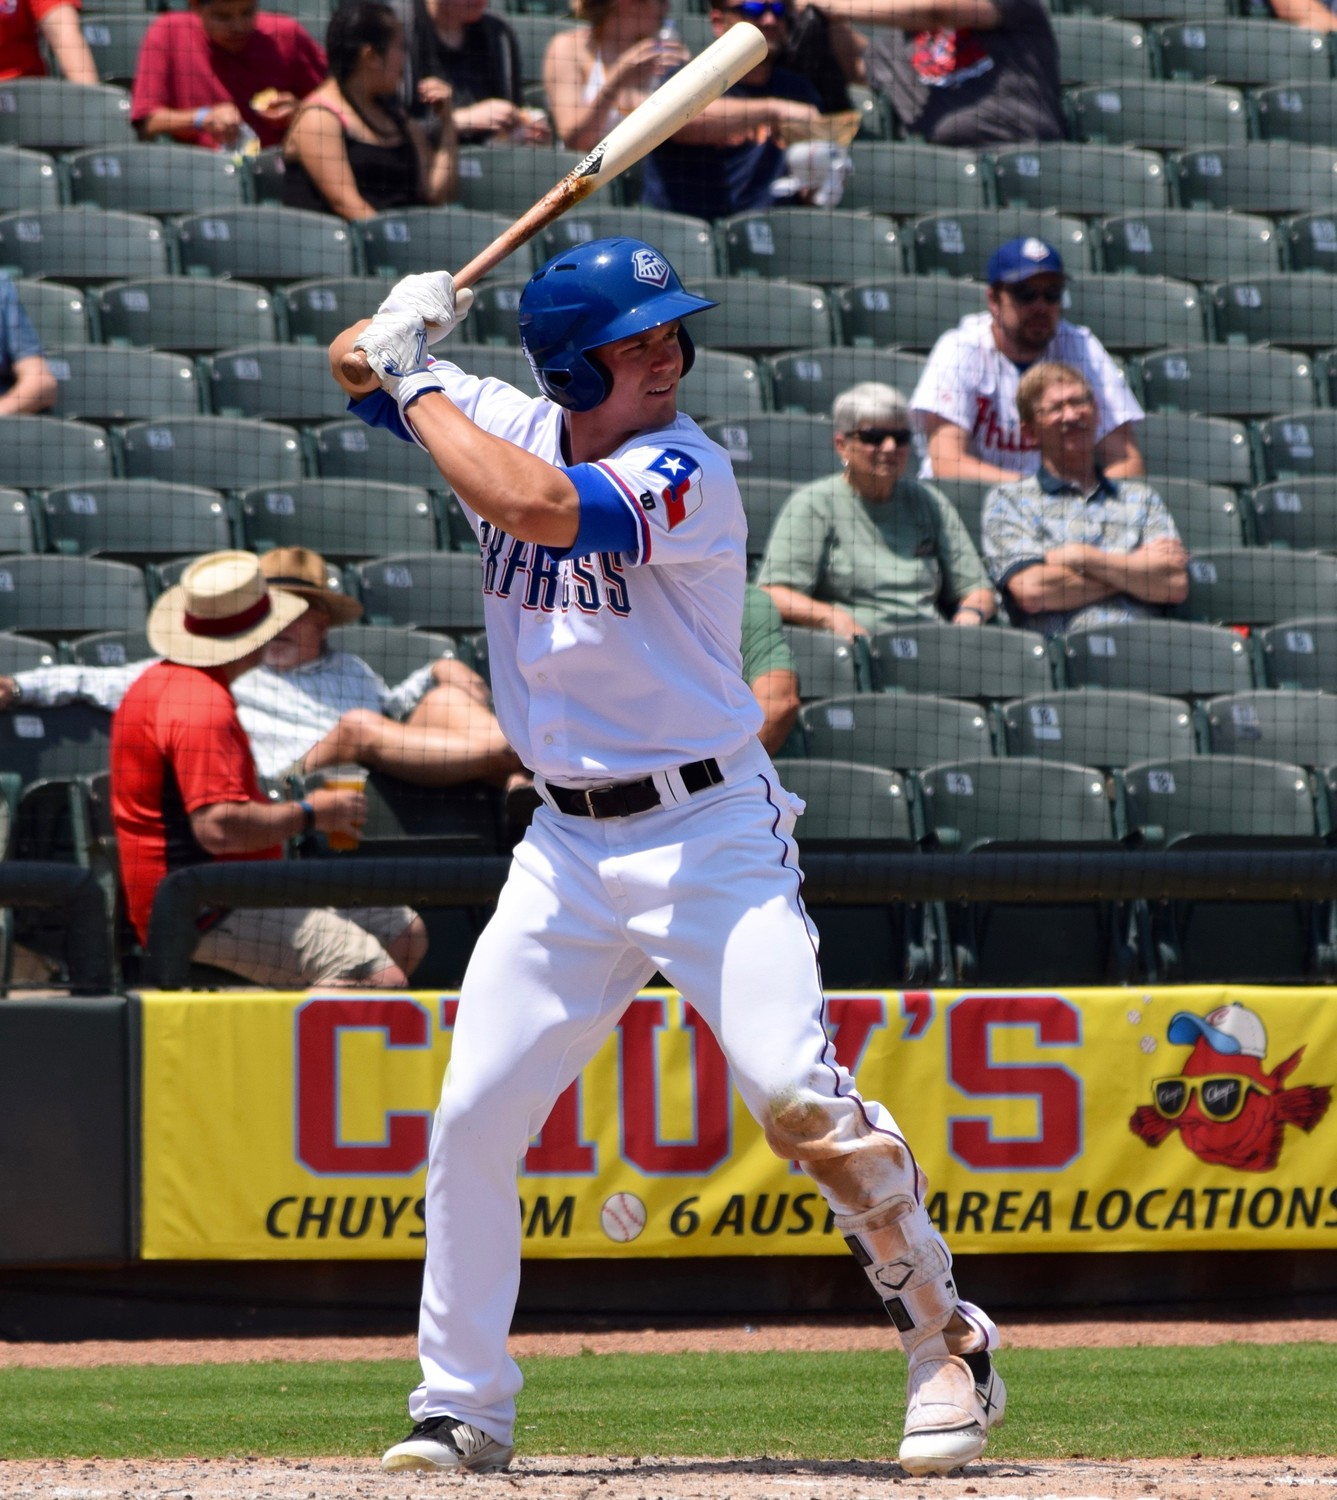 Express outfielder Scott Heineman finished with two hits and two RBIs, including a solo home run, but Round Rock lost to the Colorado Springs Sky Sox 7-2 on Sunday night.